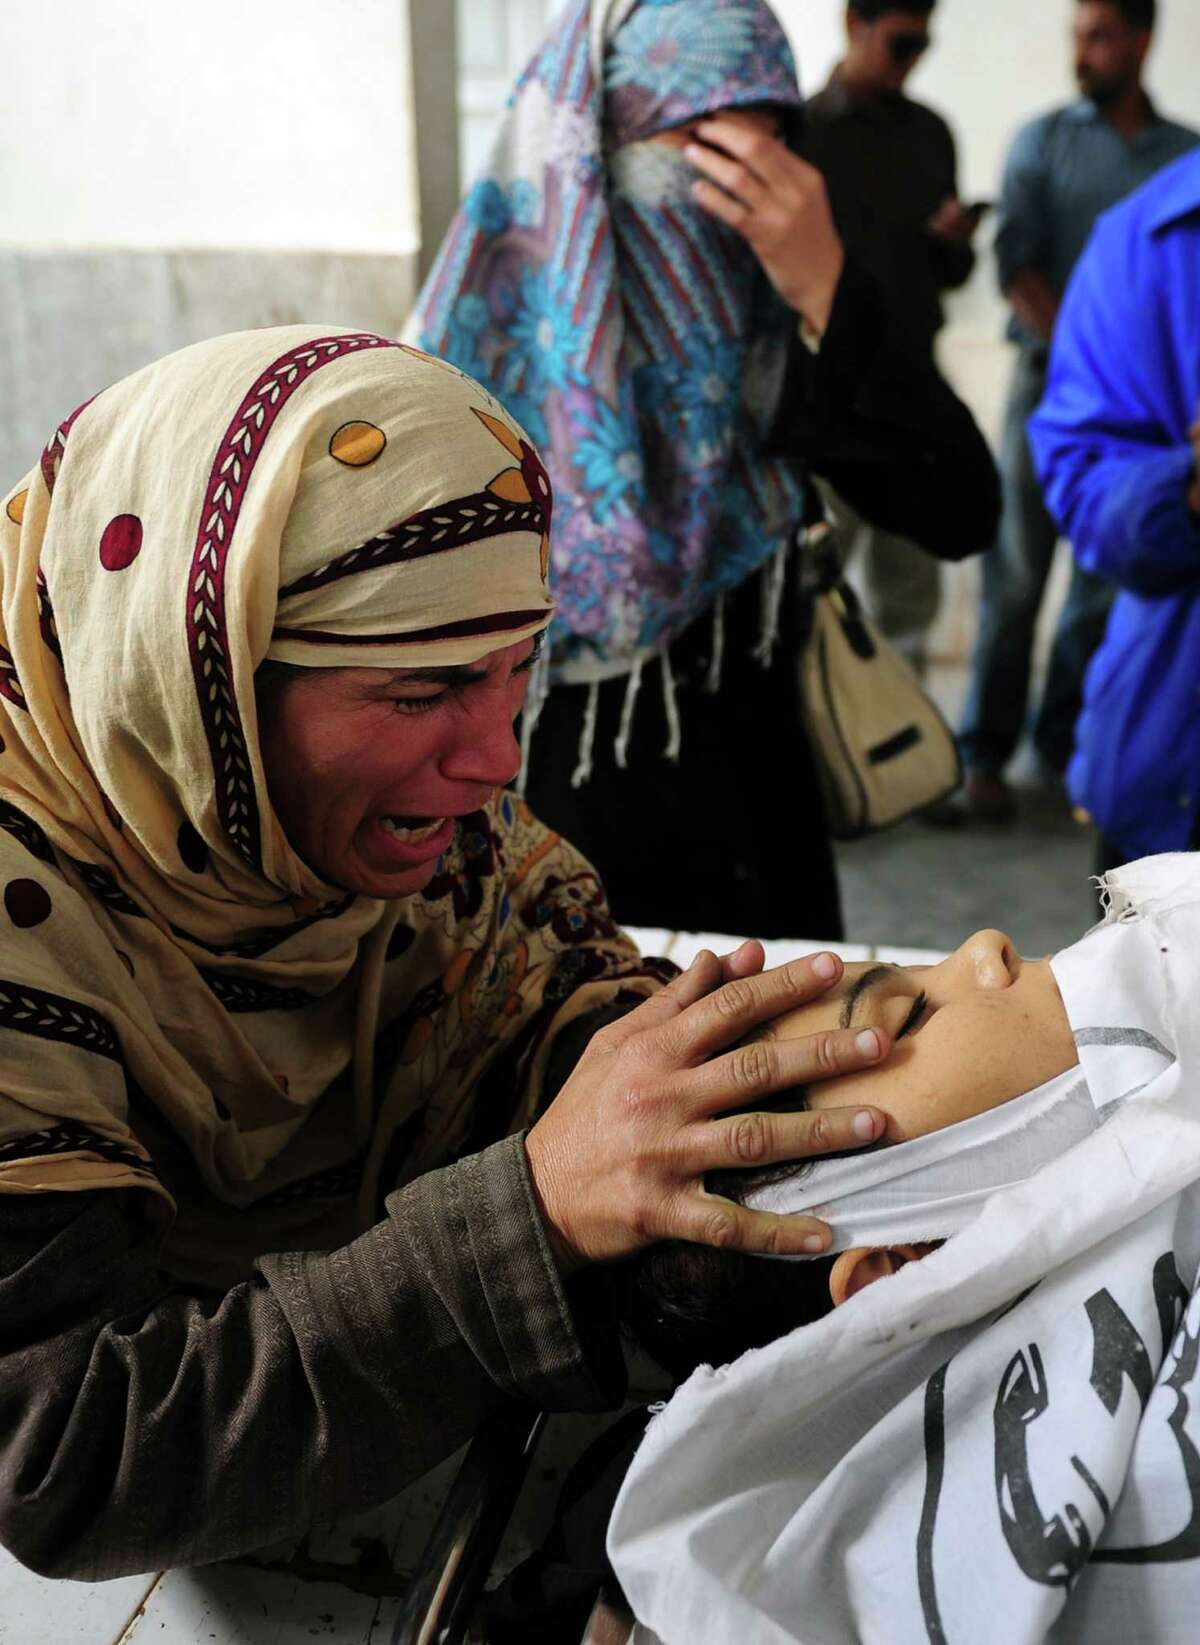 A Pakistani mother mourns over her daughter, who was killed while on the job as a polio vaccination worker, at a hospital morgue following an attack by gunmen in Karachi on December 18, 2012. Gunmen on motorbikes shot dead five female Pakistani polio vaccination workers on Tuesday, police said, highlighting resistance to the country's immunisation campaign. Four were killed in three different incidents in the sprawling port city and the fifth in the northwestern city of Peshawar, on the second day of a nationwide three-day drive against the disease, which is endemic in Pakistan. AFP PHOTO/Rizwan TABASSUMRIZWAN TABASSUM/AFP/Getty Images